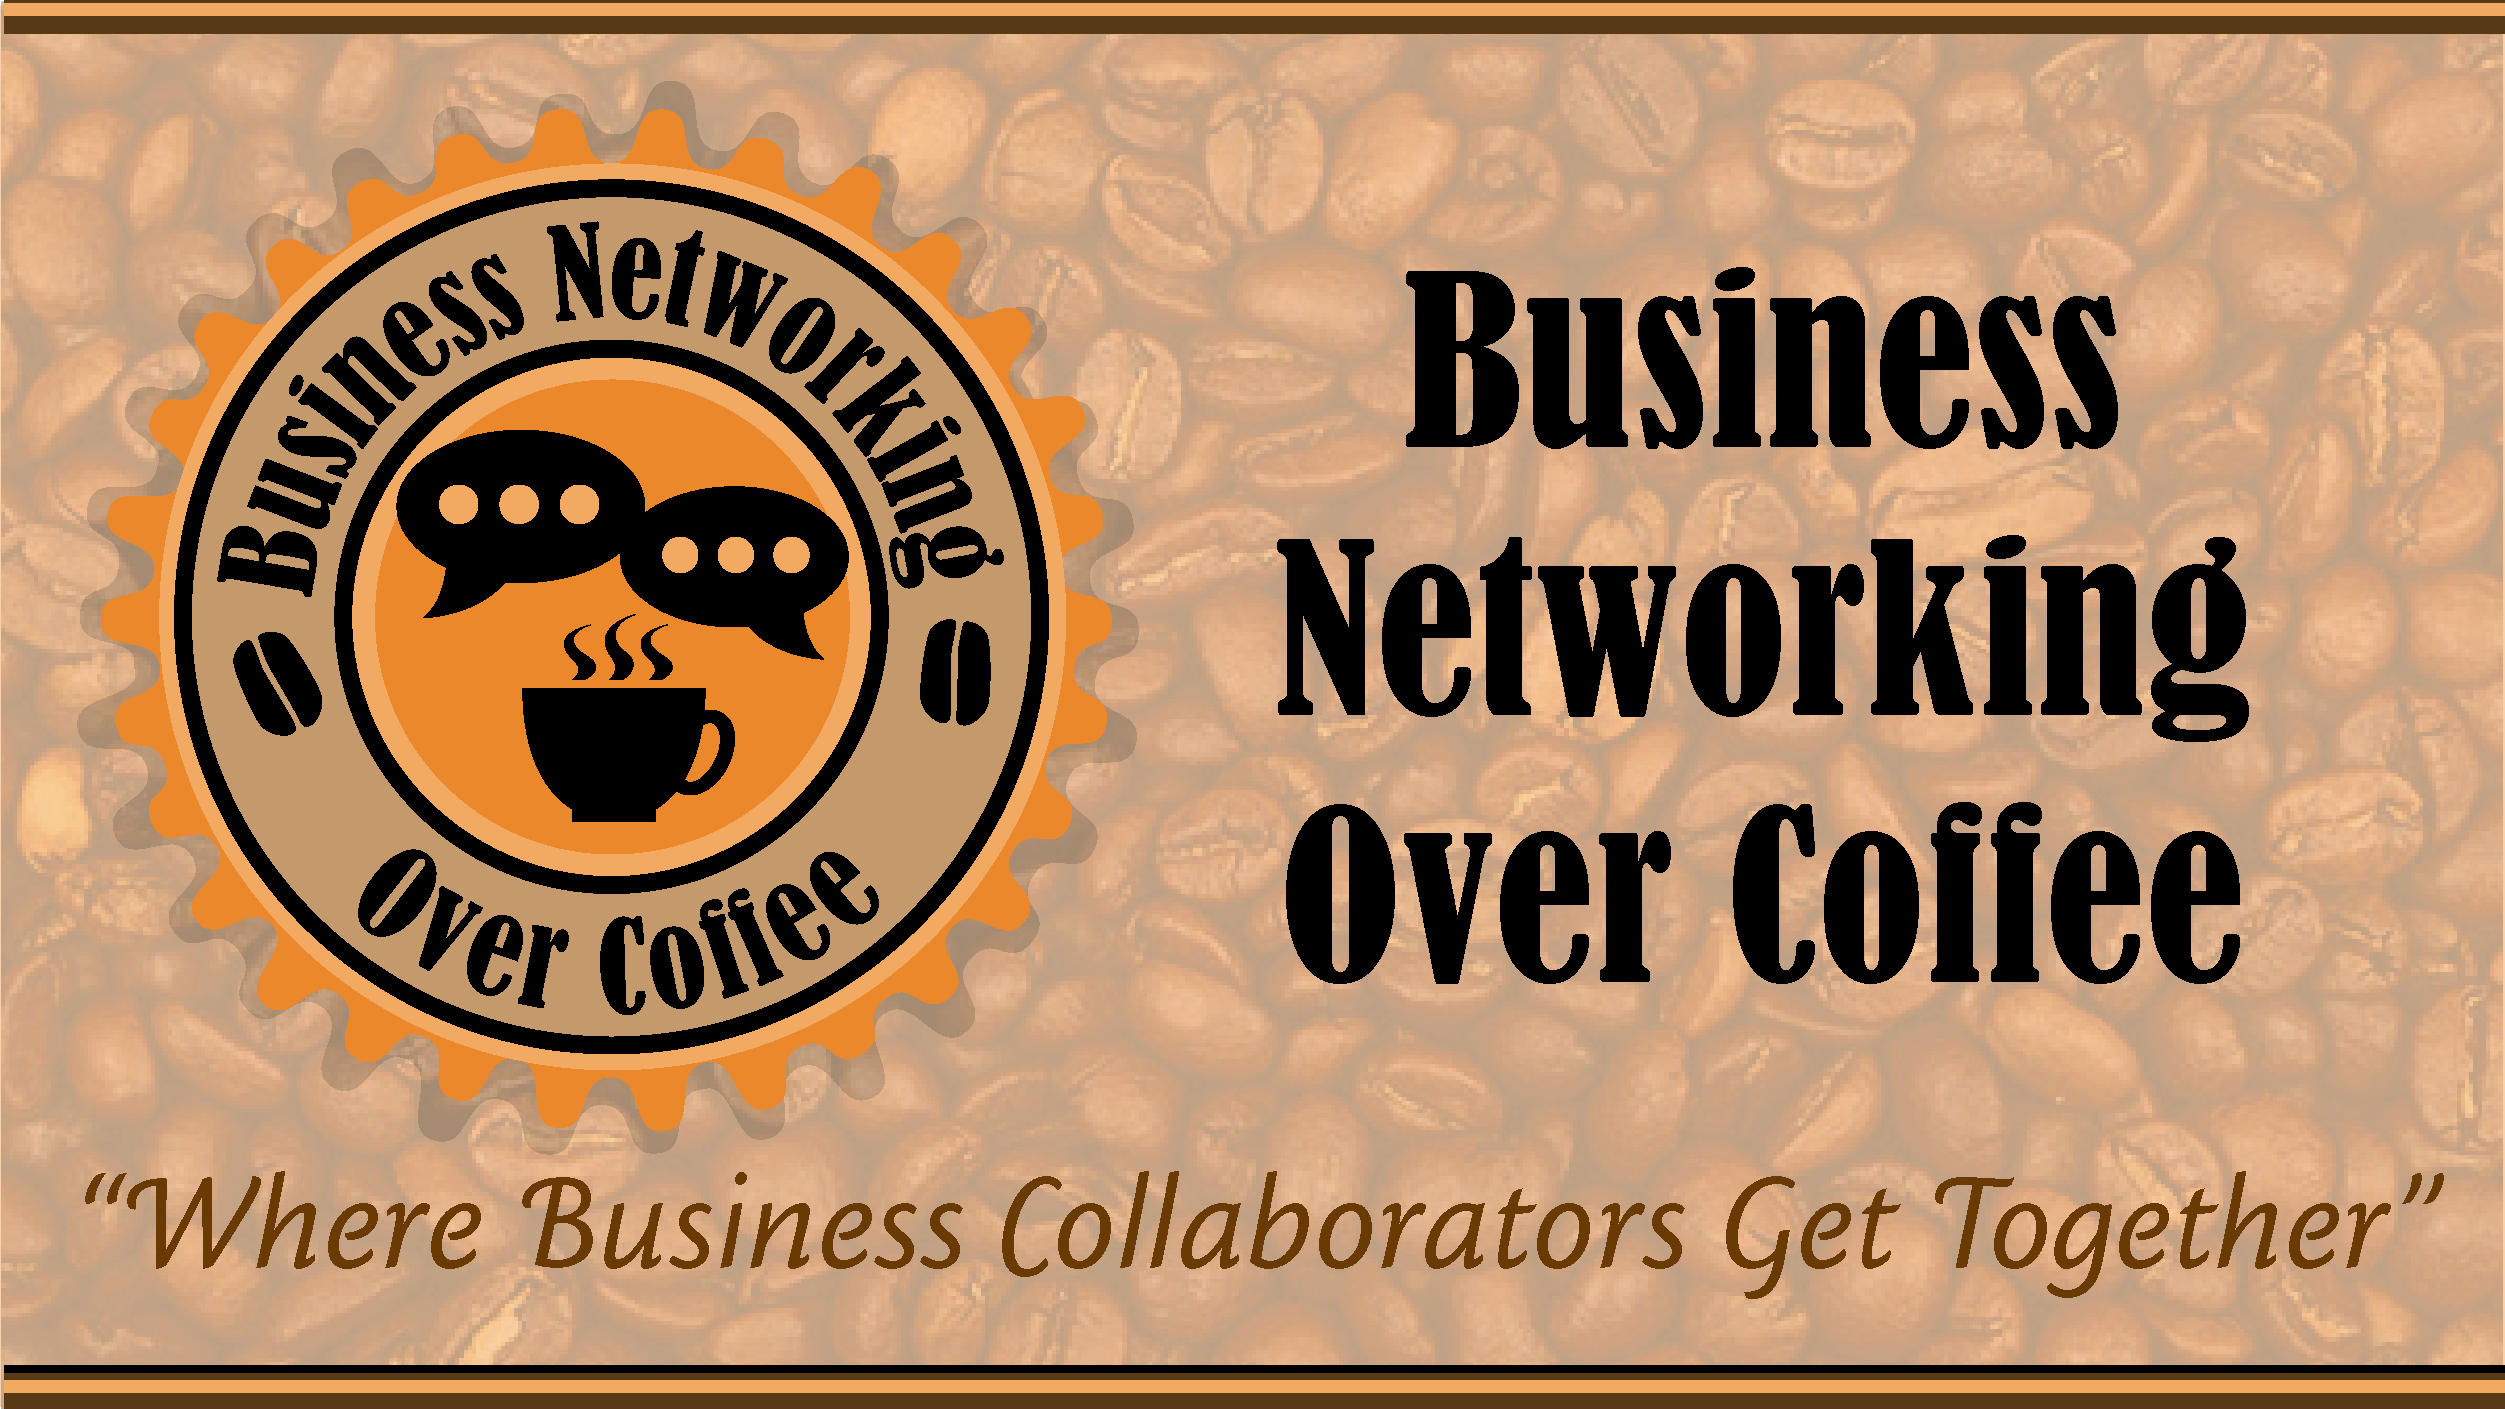 Business Networking Over Coffee